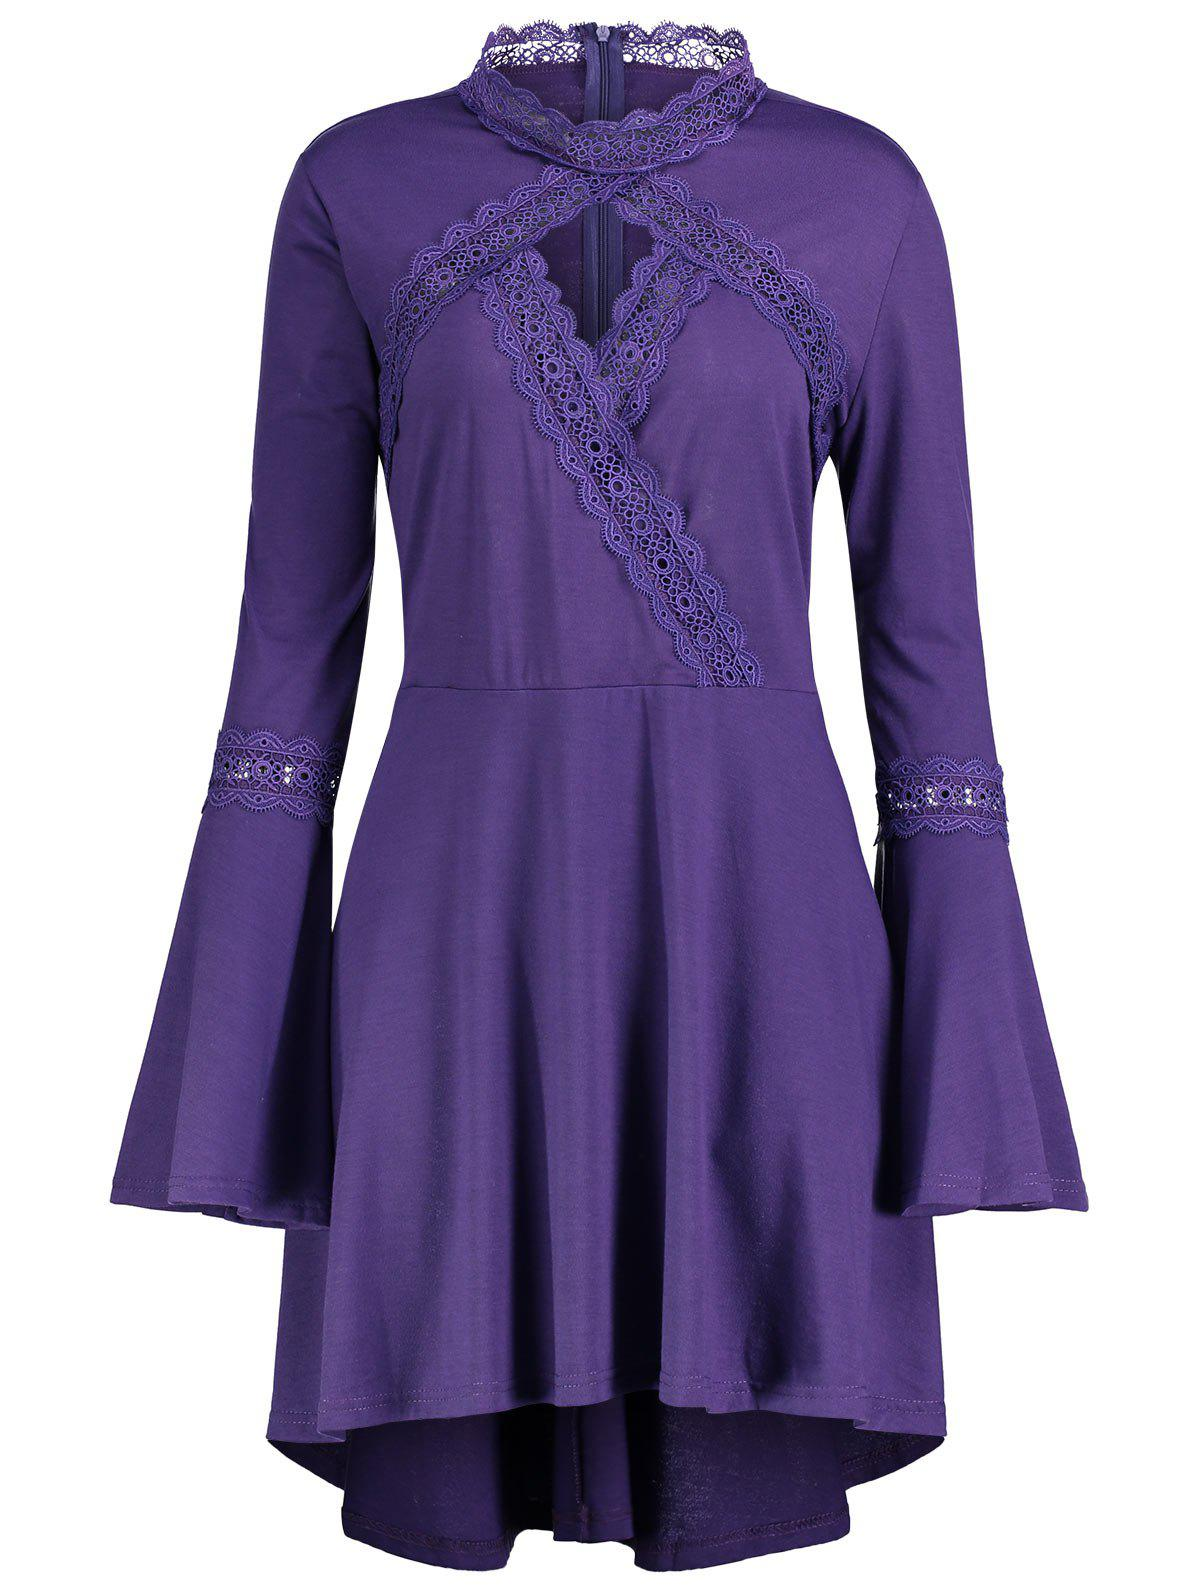 Plus Size Cut Out Long Sleeve Tunic TopWOMEN<br><br>Size: 5XL; Color: PURPLE; Material: Polyester,Spandex; Shirt Length: Long; Sleeve Length: Full; Collar: Mock Neck; Style: Fashion; Season: Fall,Spring; Pattern Type: Solid; Weight: 0.3700kg; Package Contents: 1 x Top;